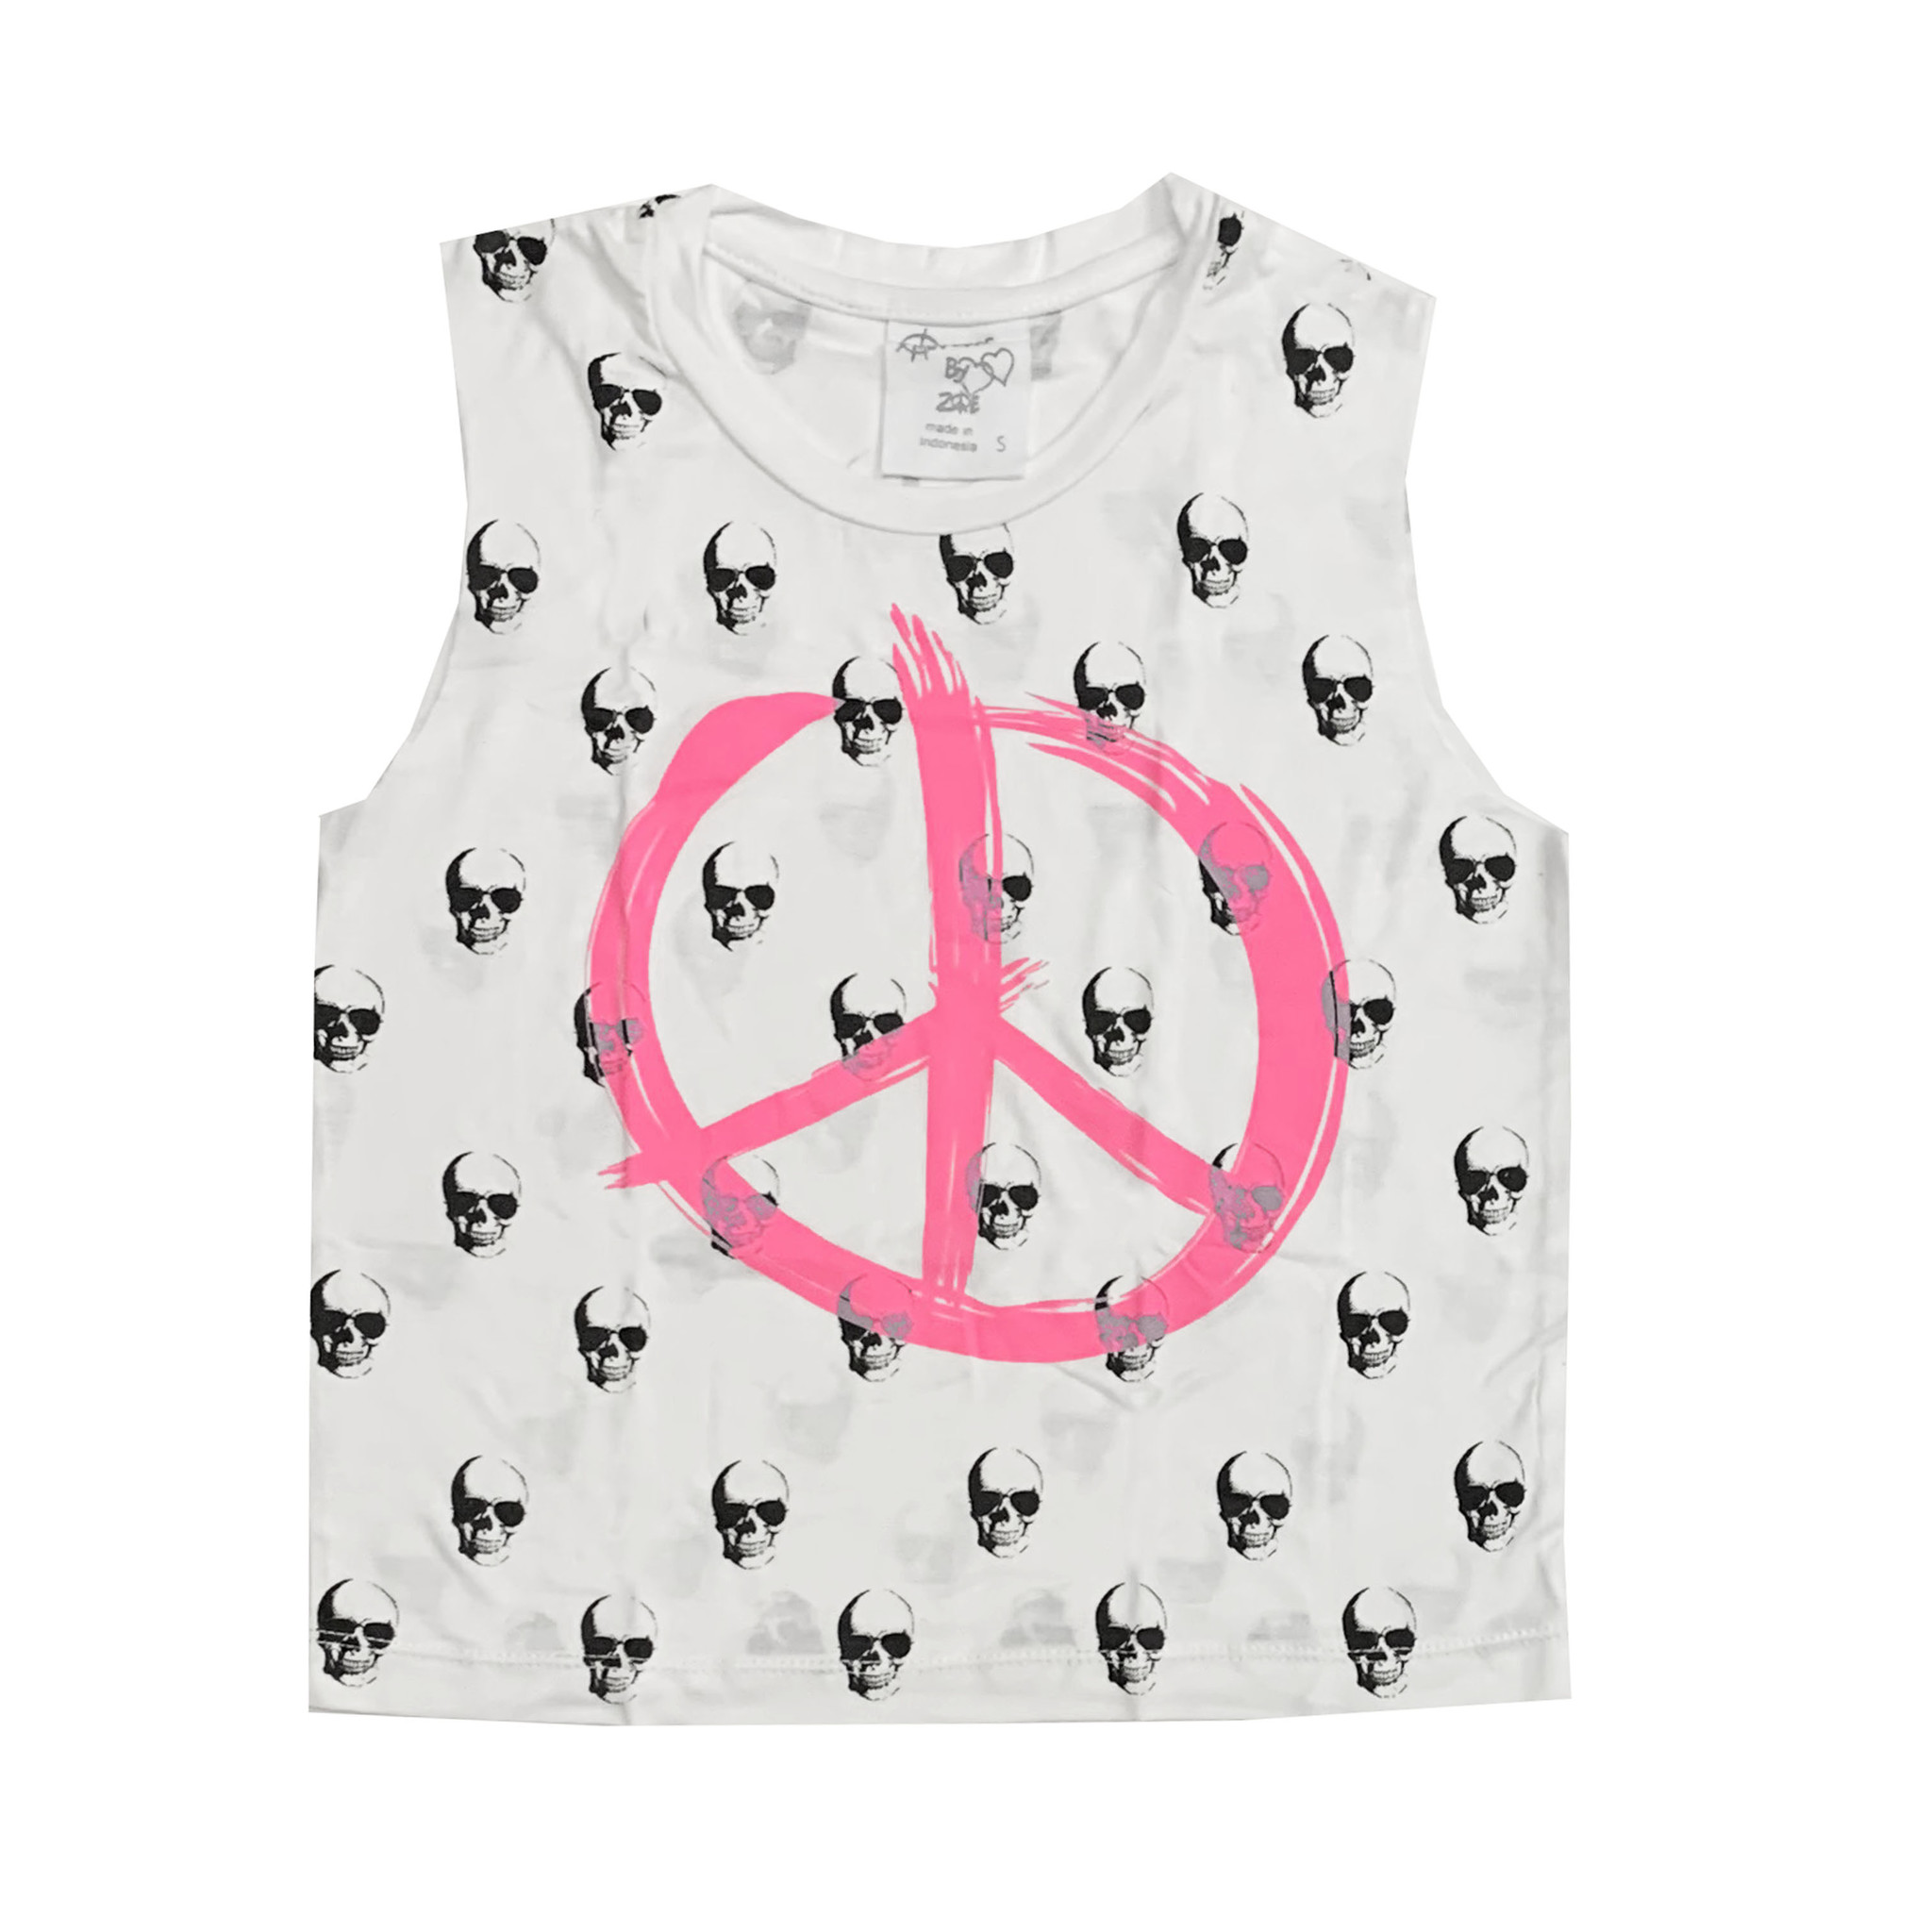 Flowers by Zoe Skull & Peace Print Crop Tank